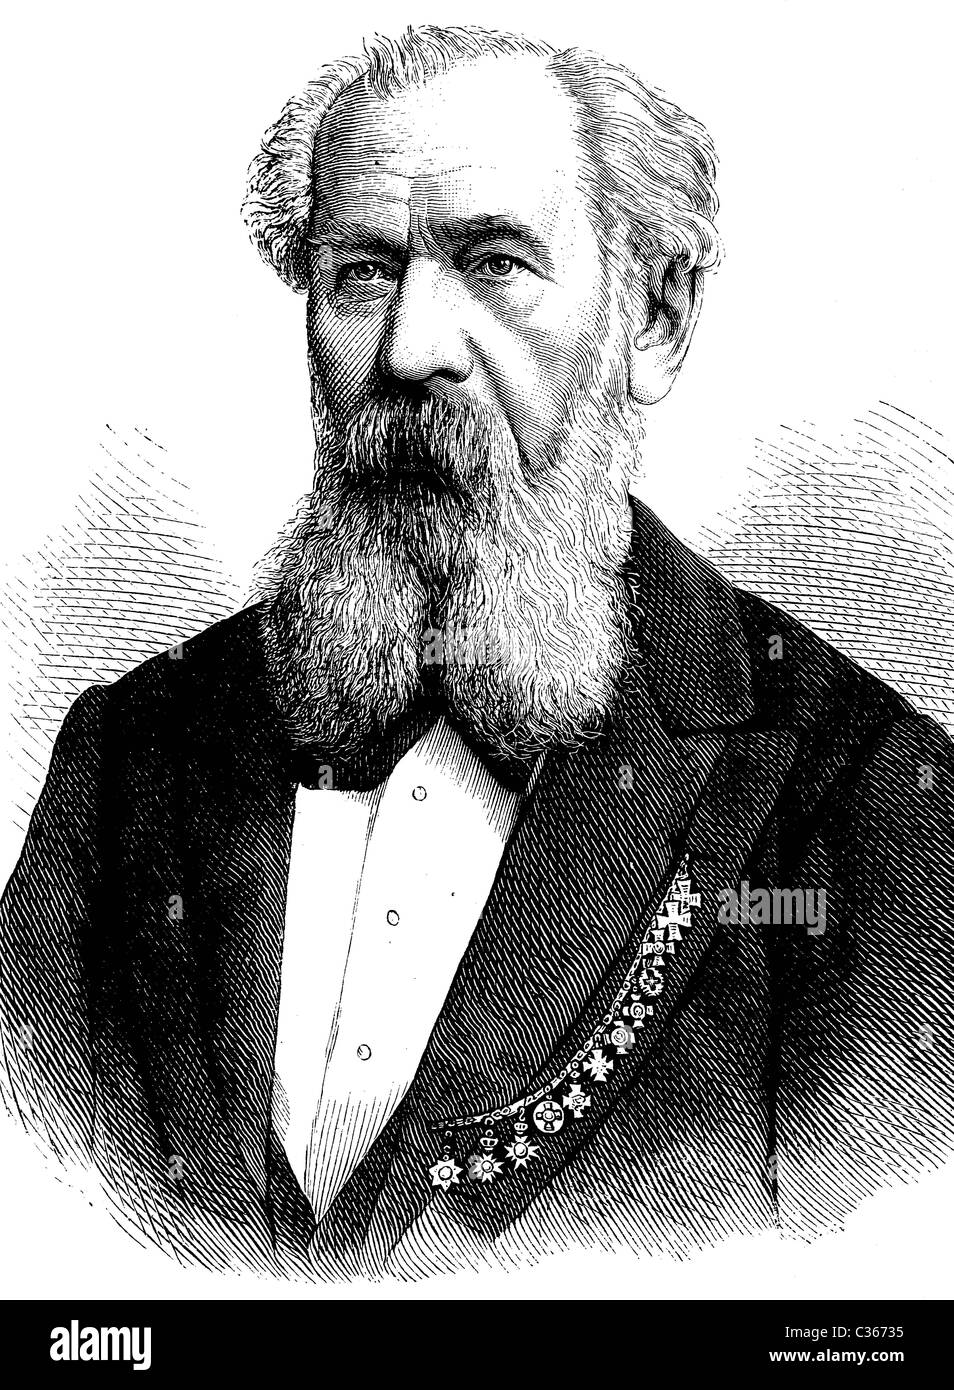 Benjamin Bilse, 1816-1902, German composer and conductor, historical illustration, circa 1886 - Stock Image